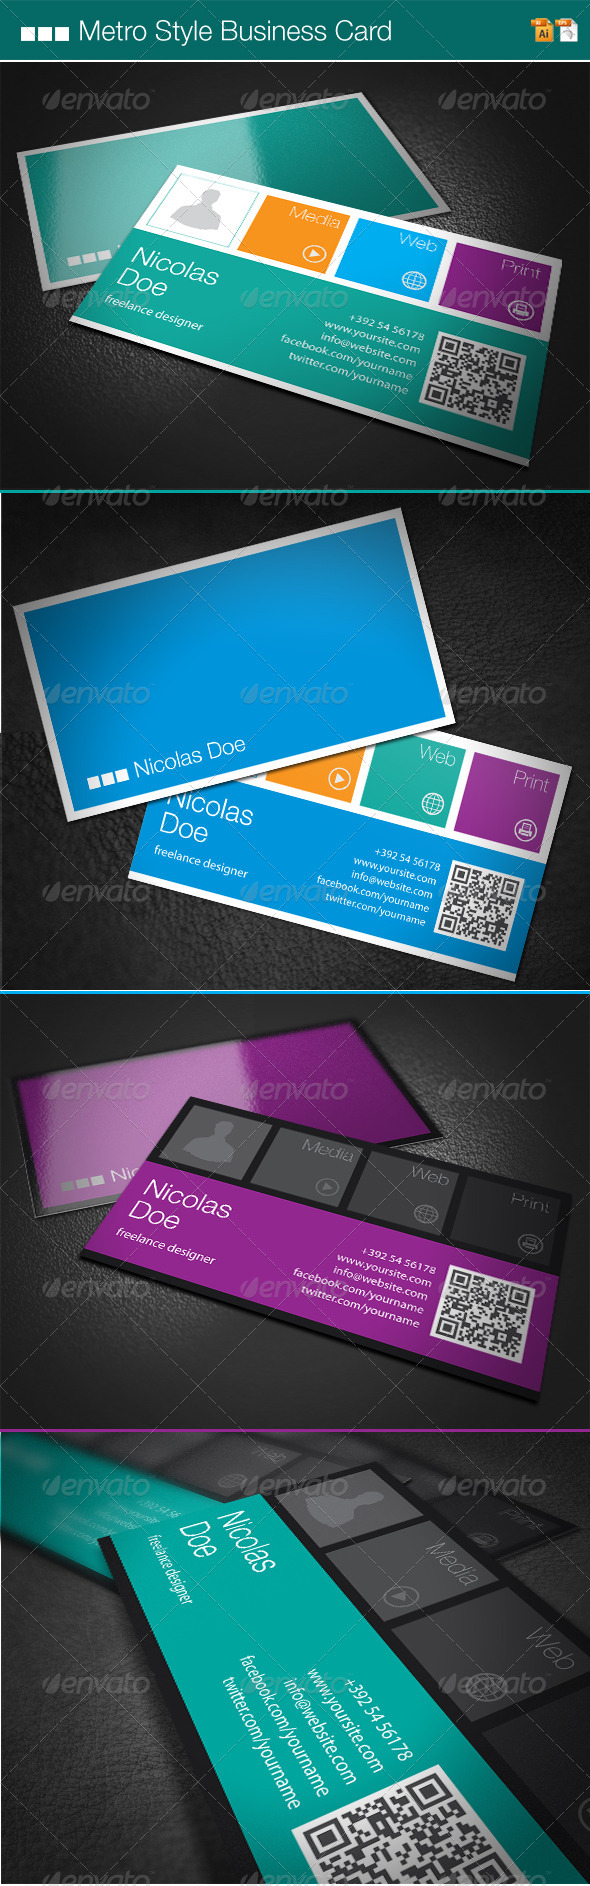 GraphicRiver Metro Style Business Card 4235793